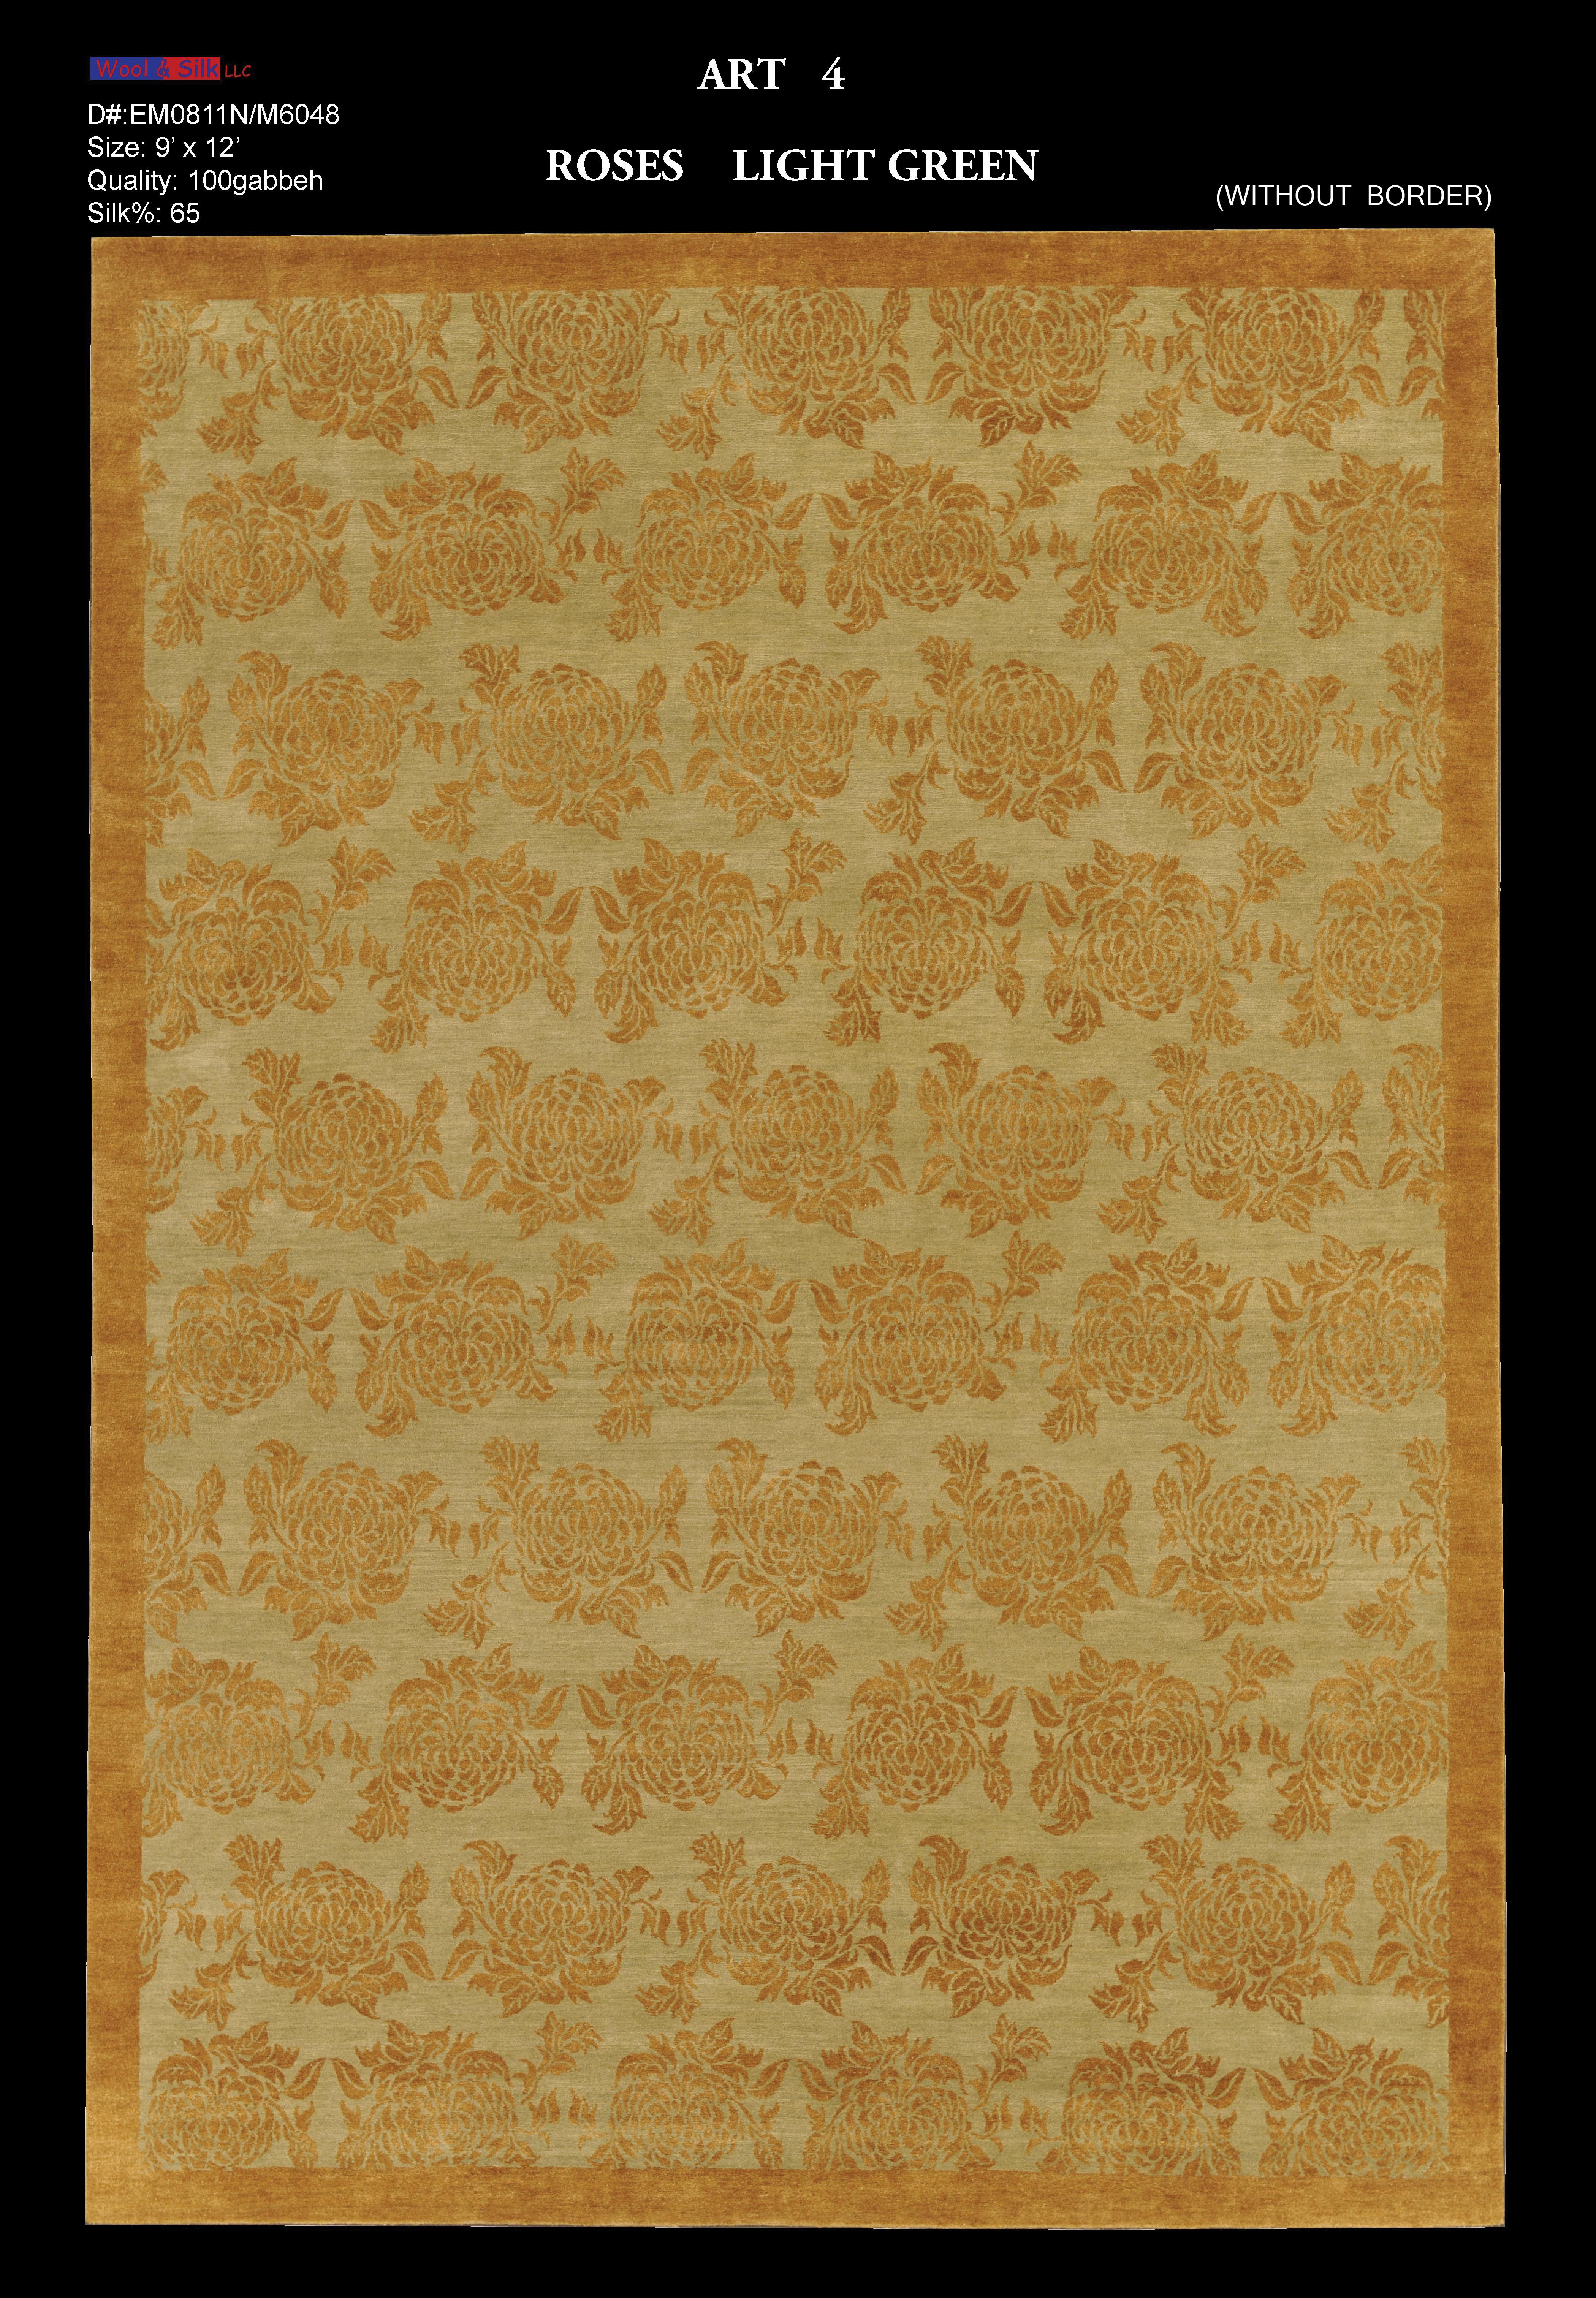 Roses-Light Green(EM0811N-M6048) 9'X12' Without Border